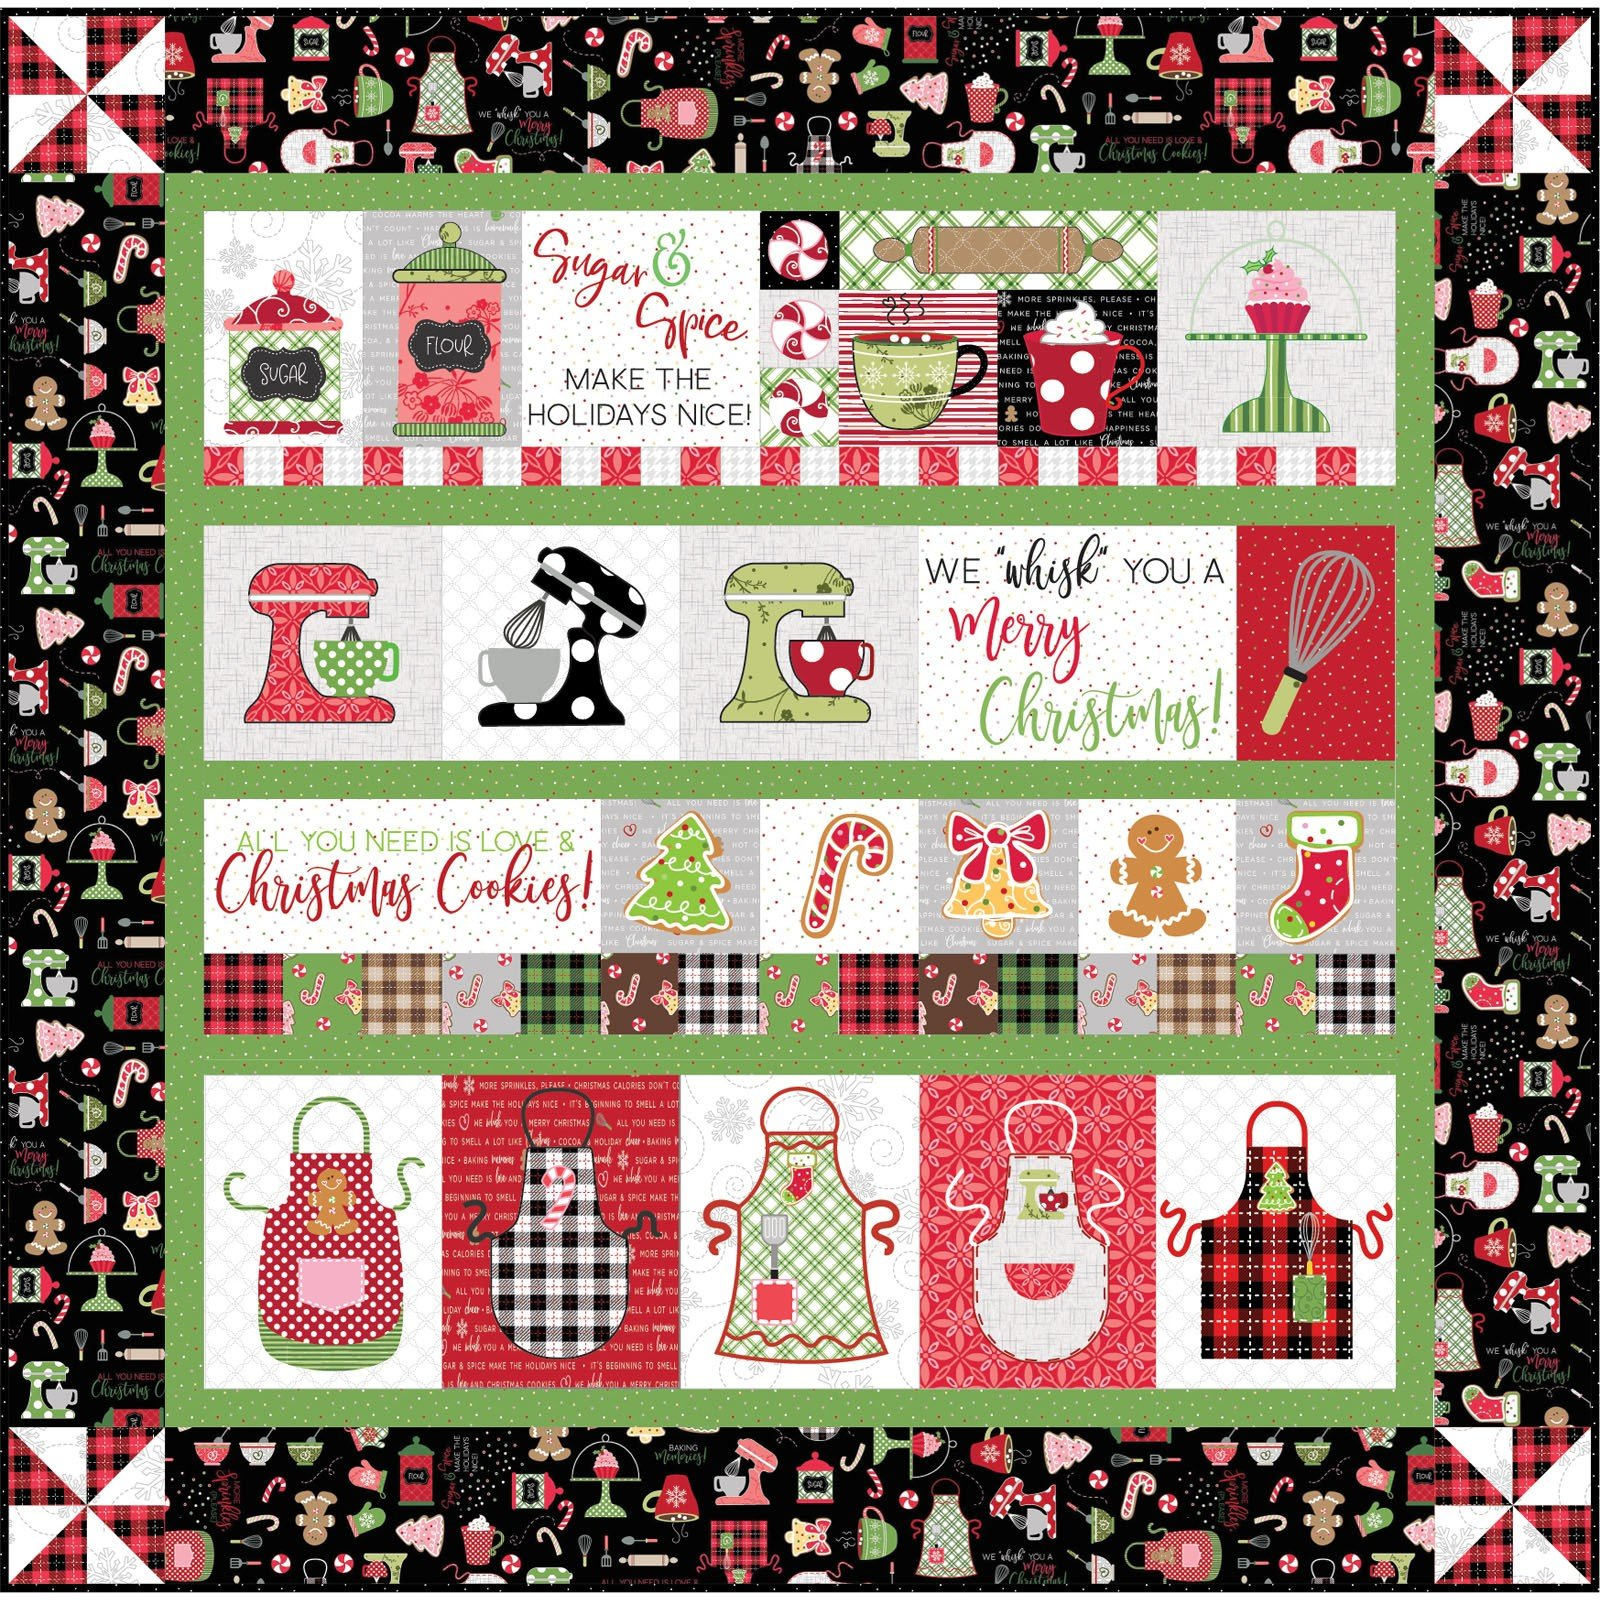 Maywood Studios - We Whisk You A Merry Christmas - Quilt Kit - Black Embroidery Version